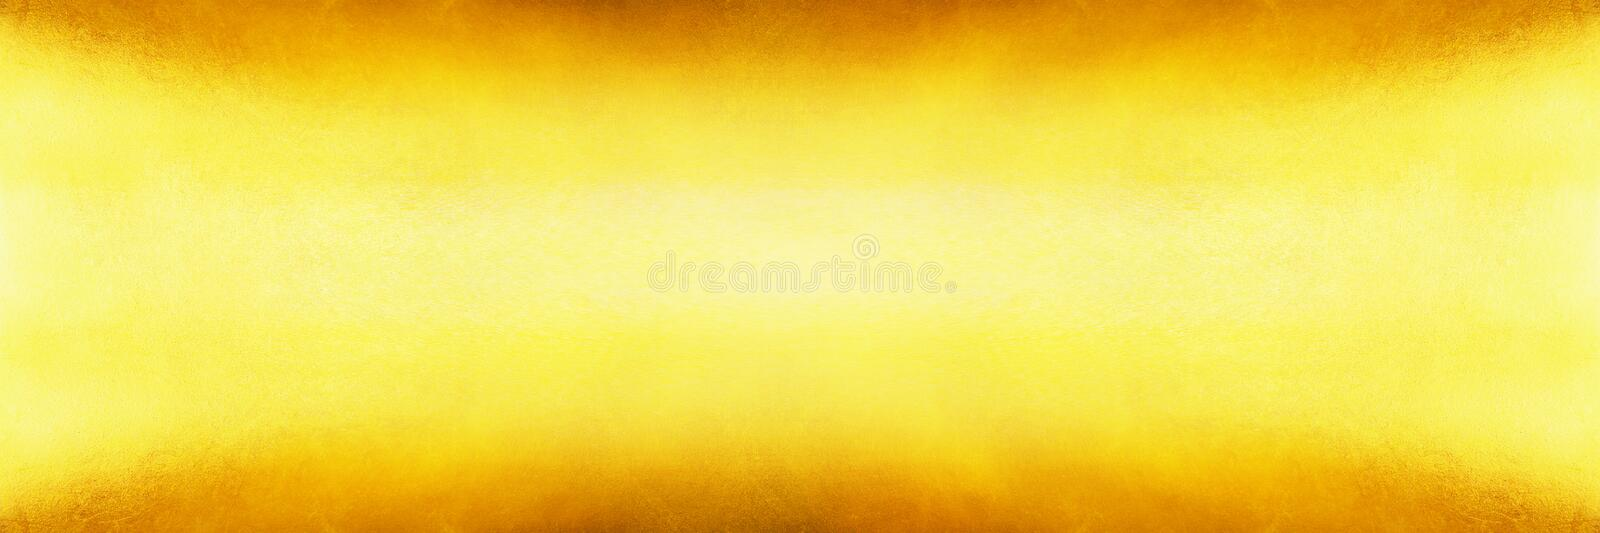 horizontal elegant light gold texture for background and design royalty free stock photo